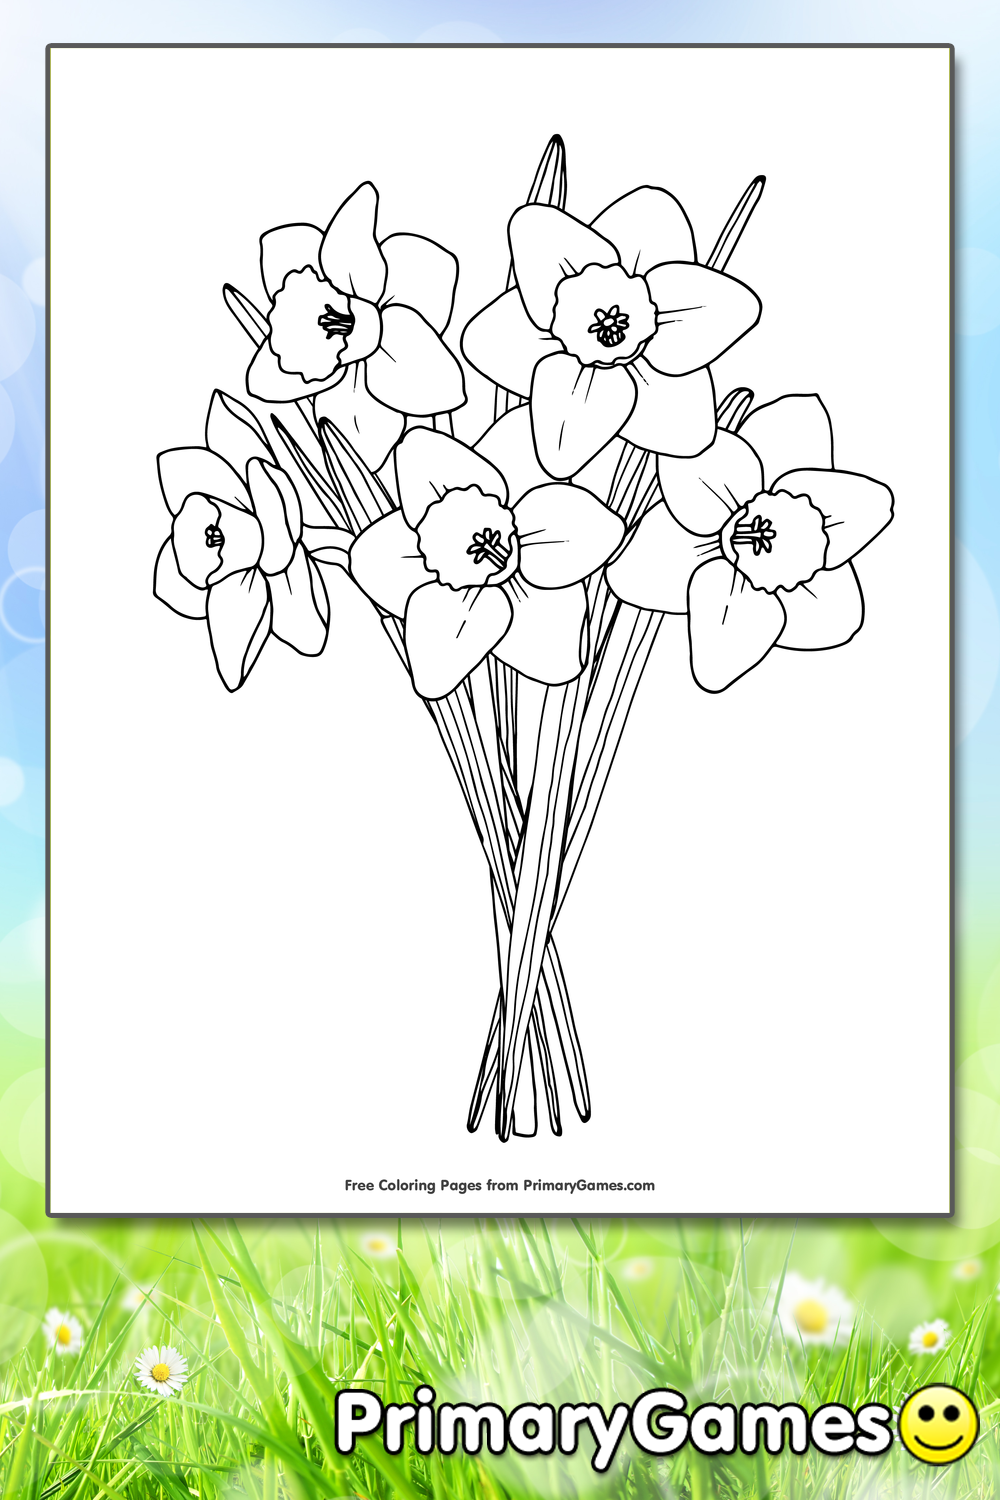 Daffodils Coloring Page Free Printable Pdf From Primarygames